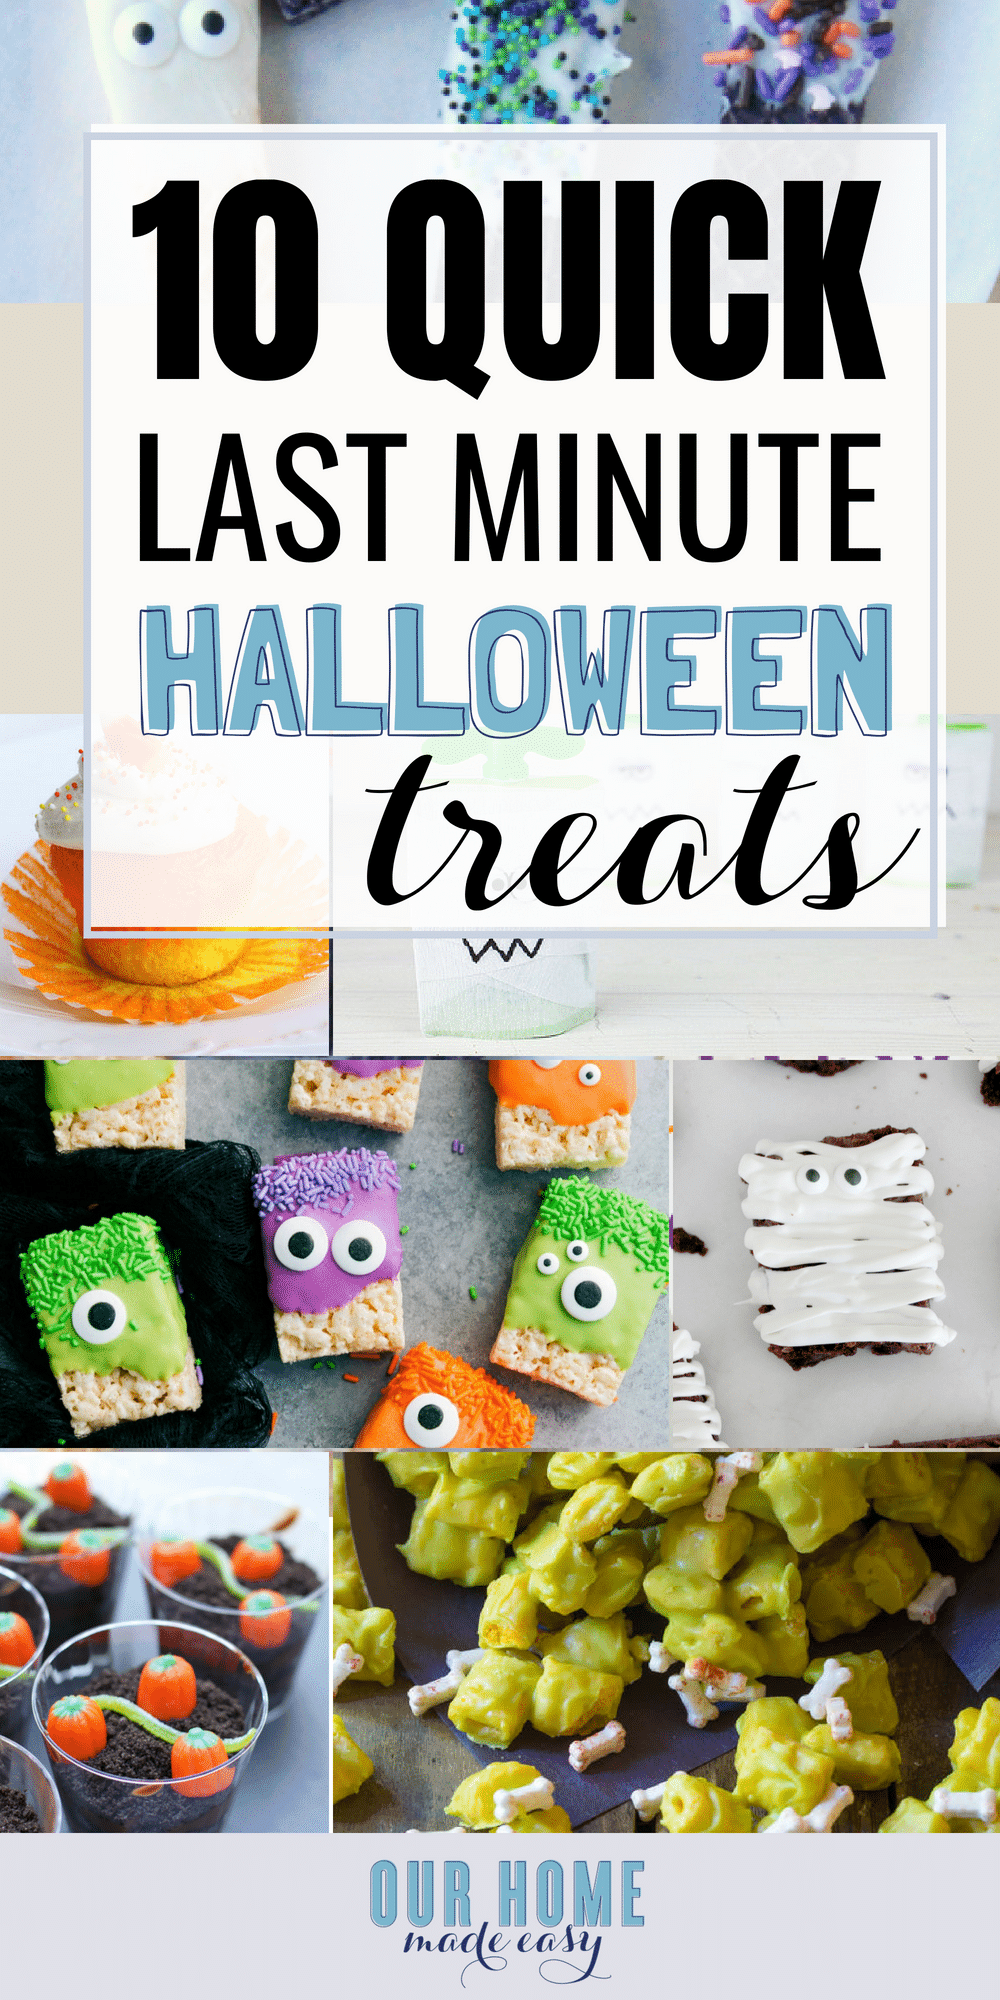 Ten quick last minute Halloween treats for a school party! These quick treats are so easy to whip together and the kids will love them!